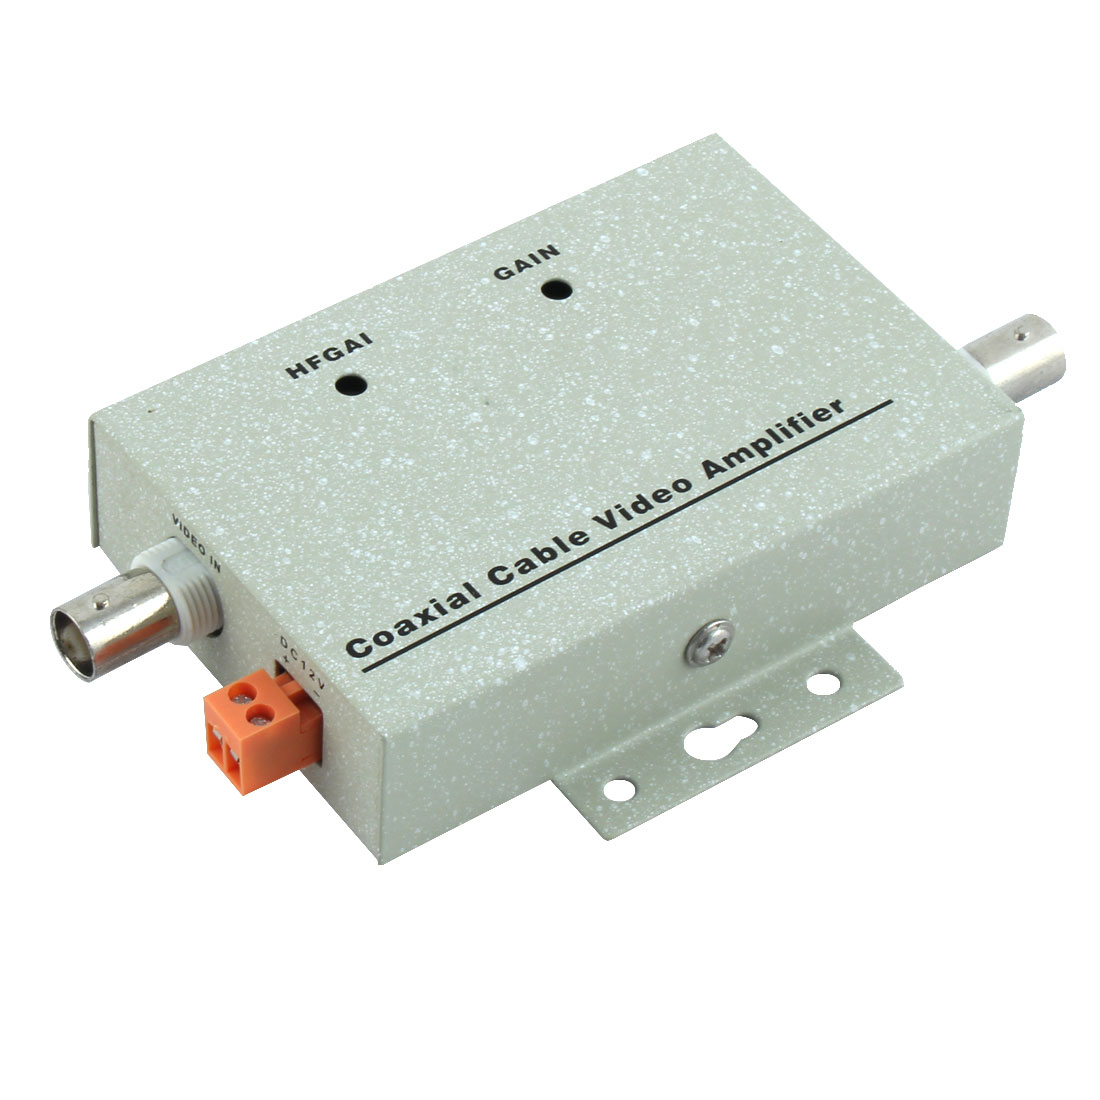 BNC Coaxial CCTV Video Balun Amplifier for CCTV Camera